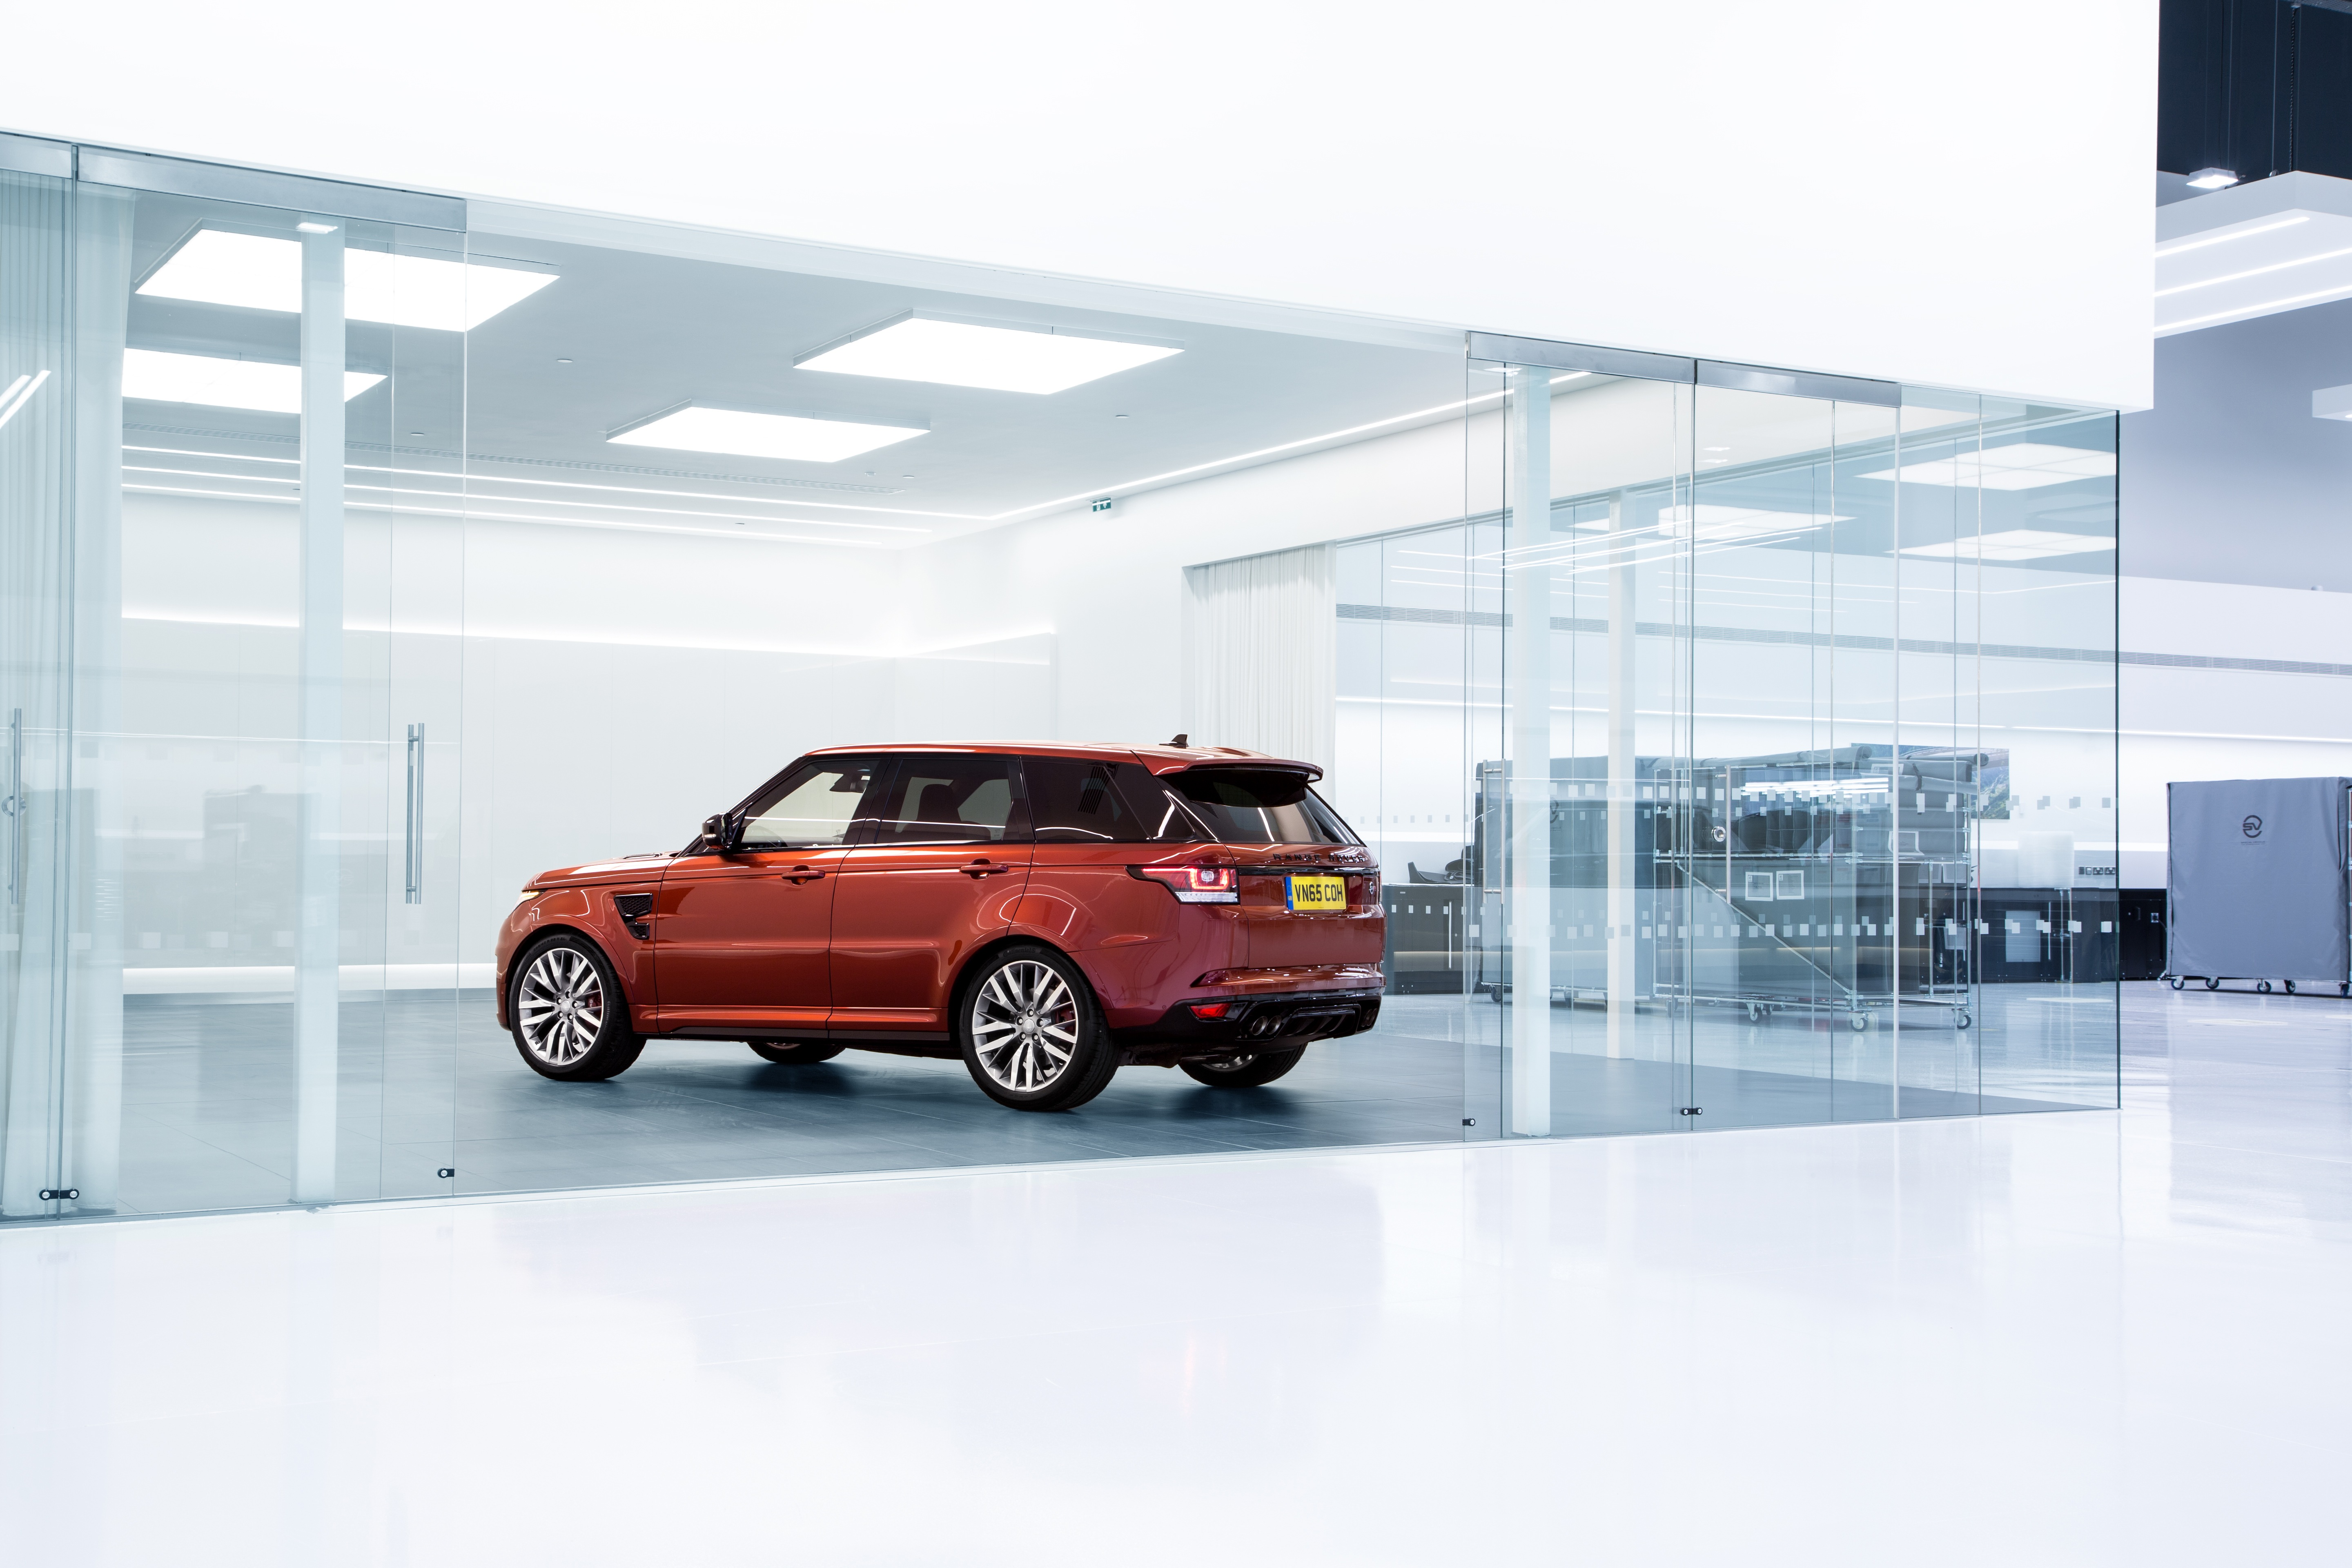 Jaguar Land Rover's zero emission vehicle technology secures £2.5 million